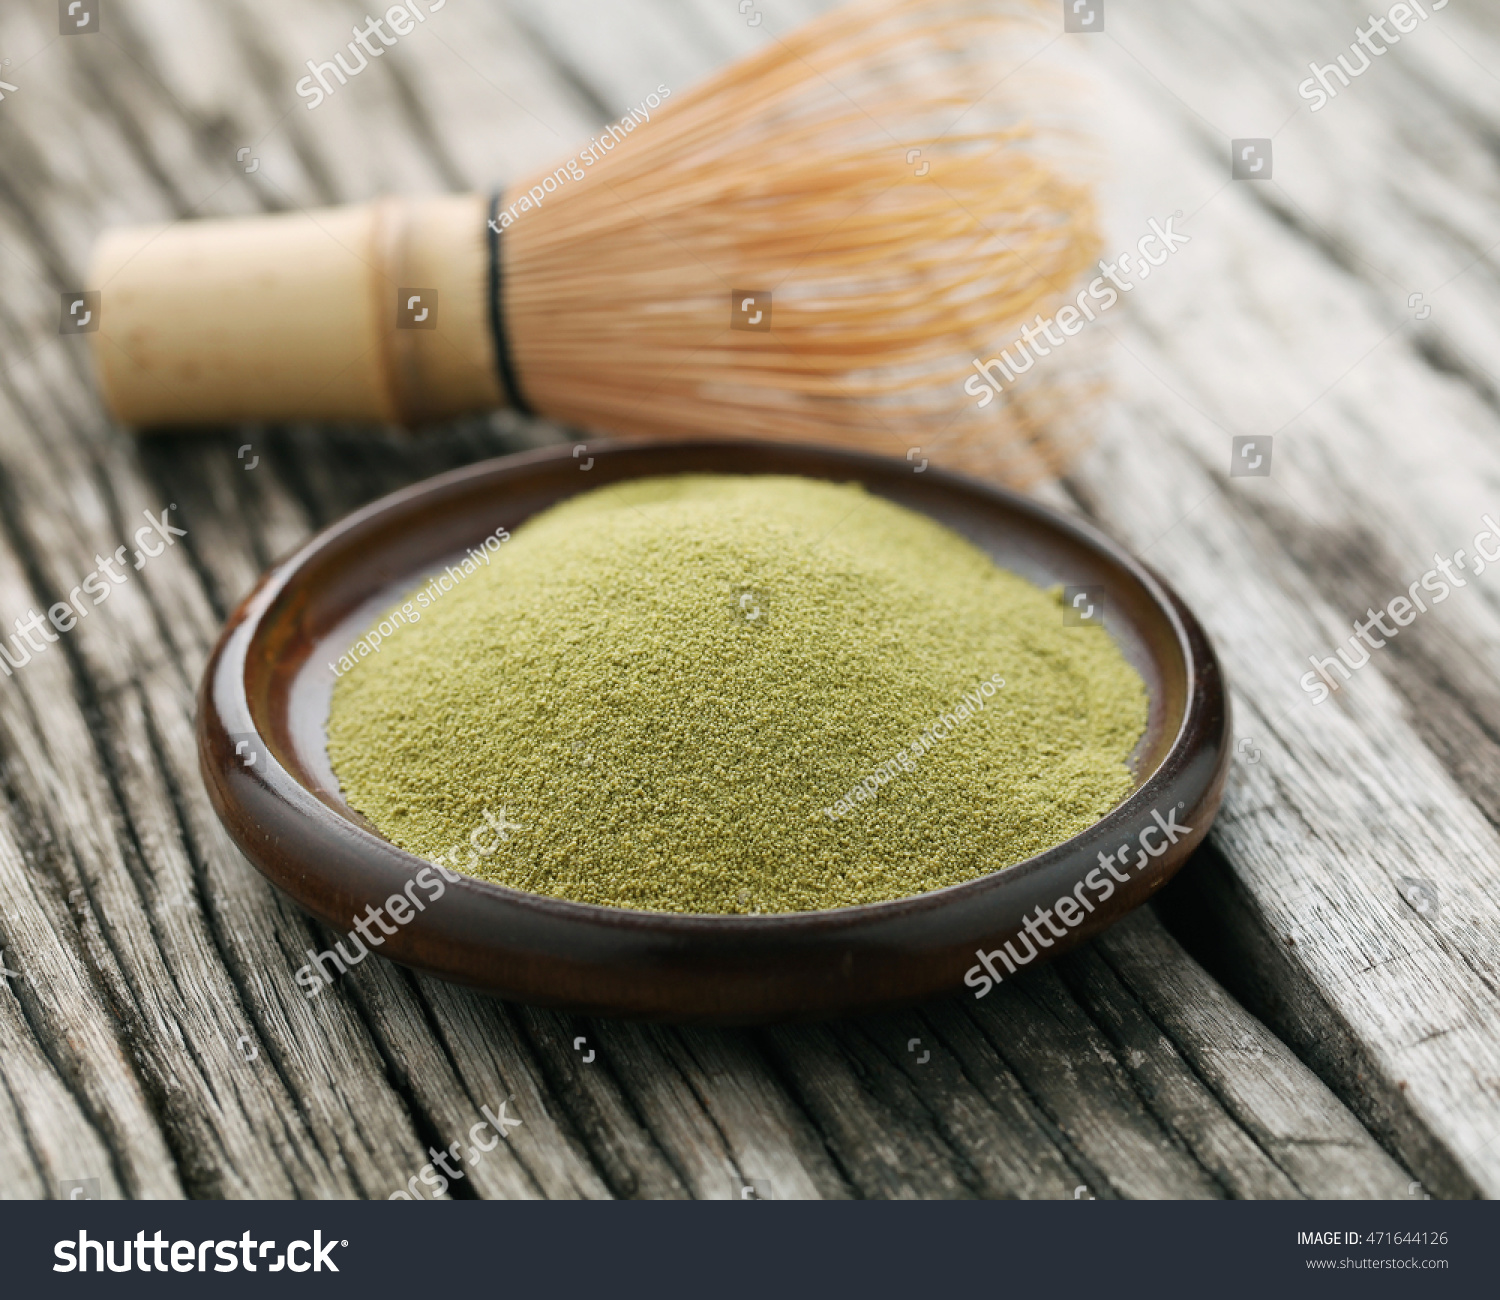 how to make matcha tea with bamboo whisk